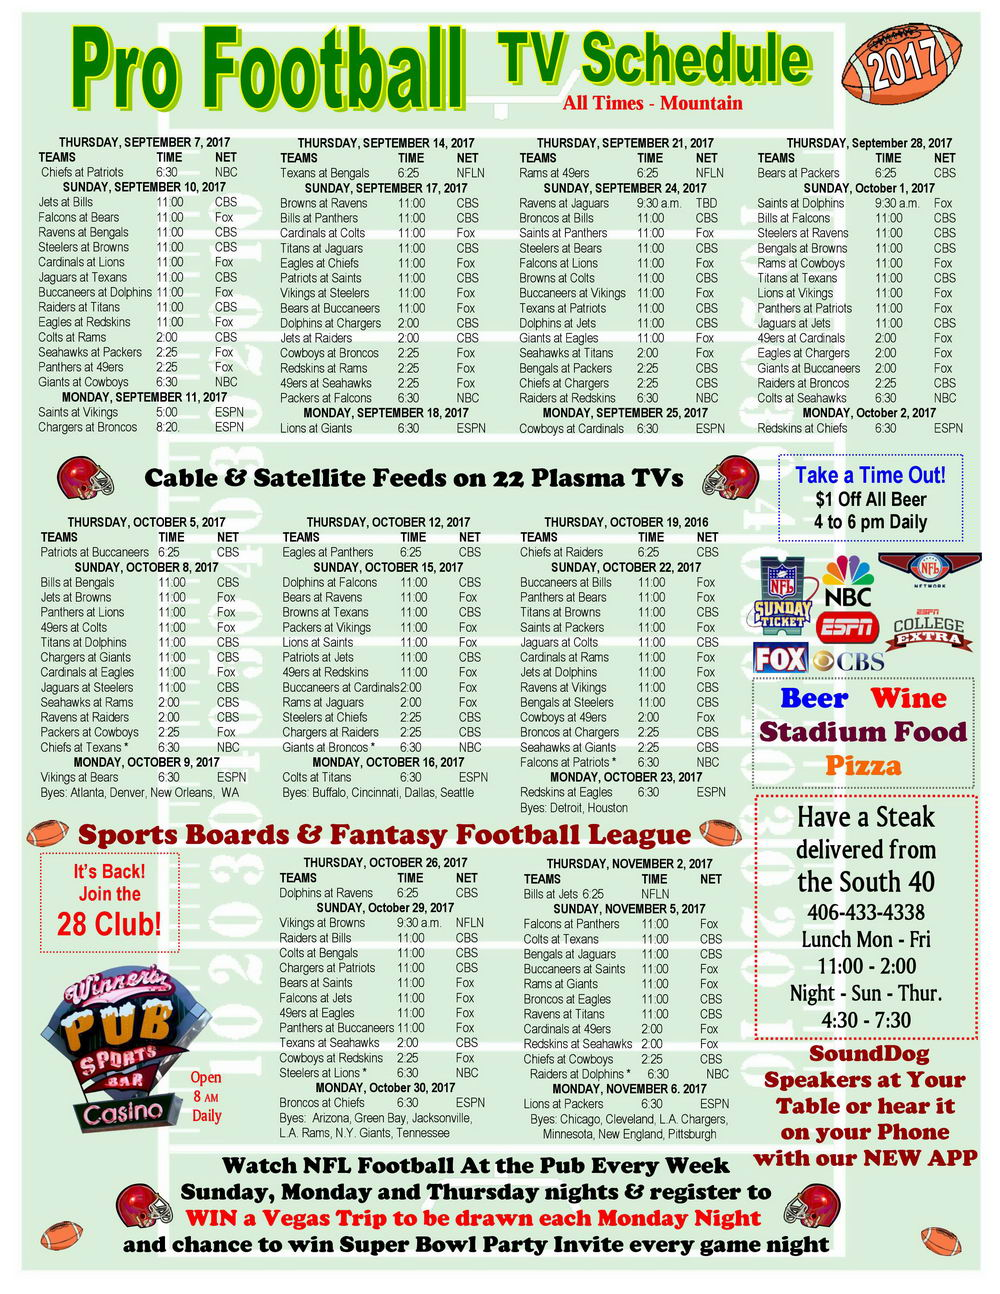 NFL TV Sched 2017.small